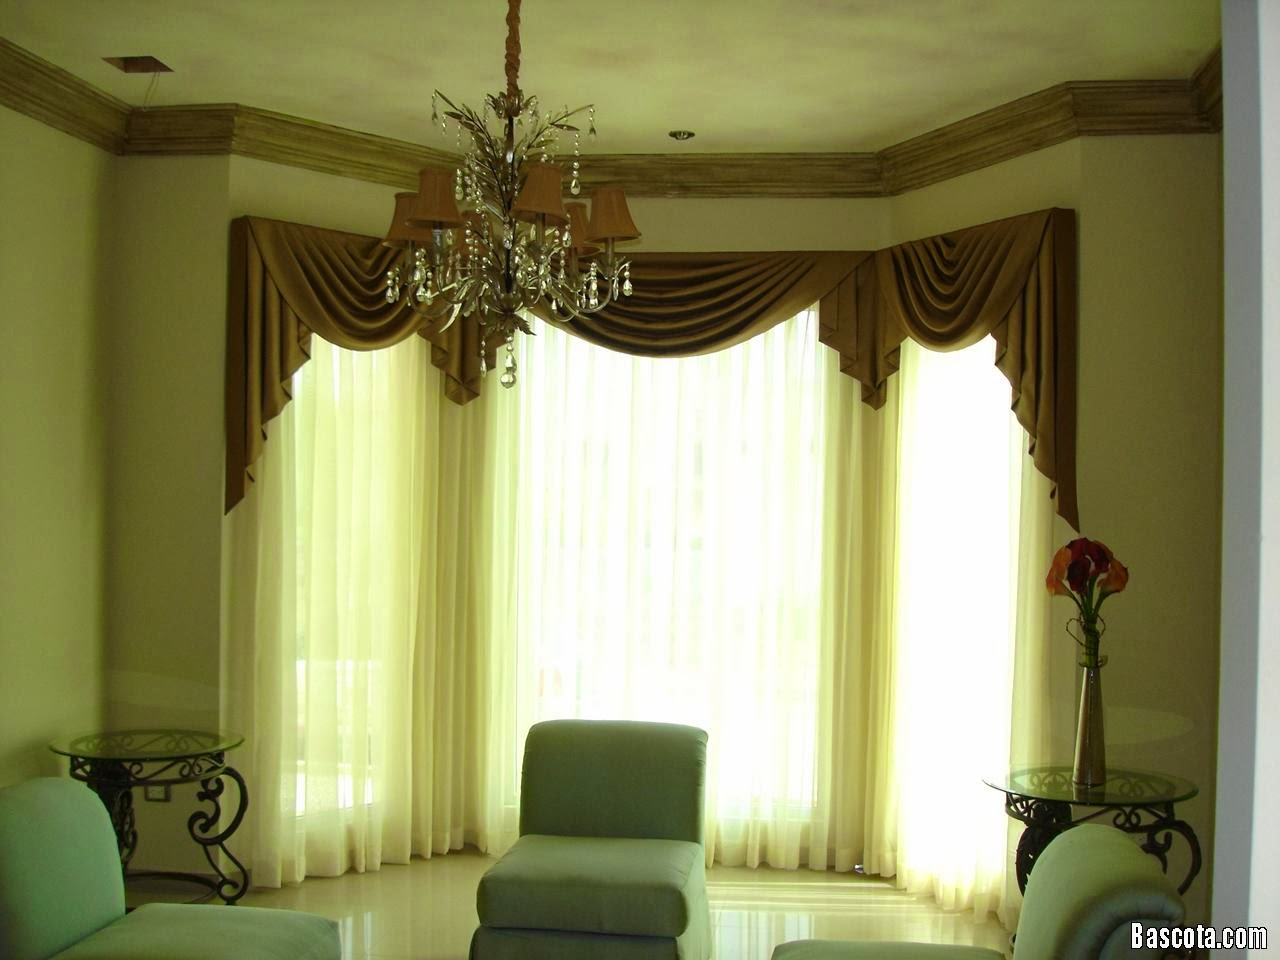 window curtain ideas for living room ideas for window curtains for living room 2014 part 3 24971